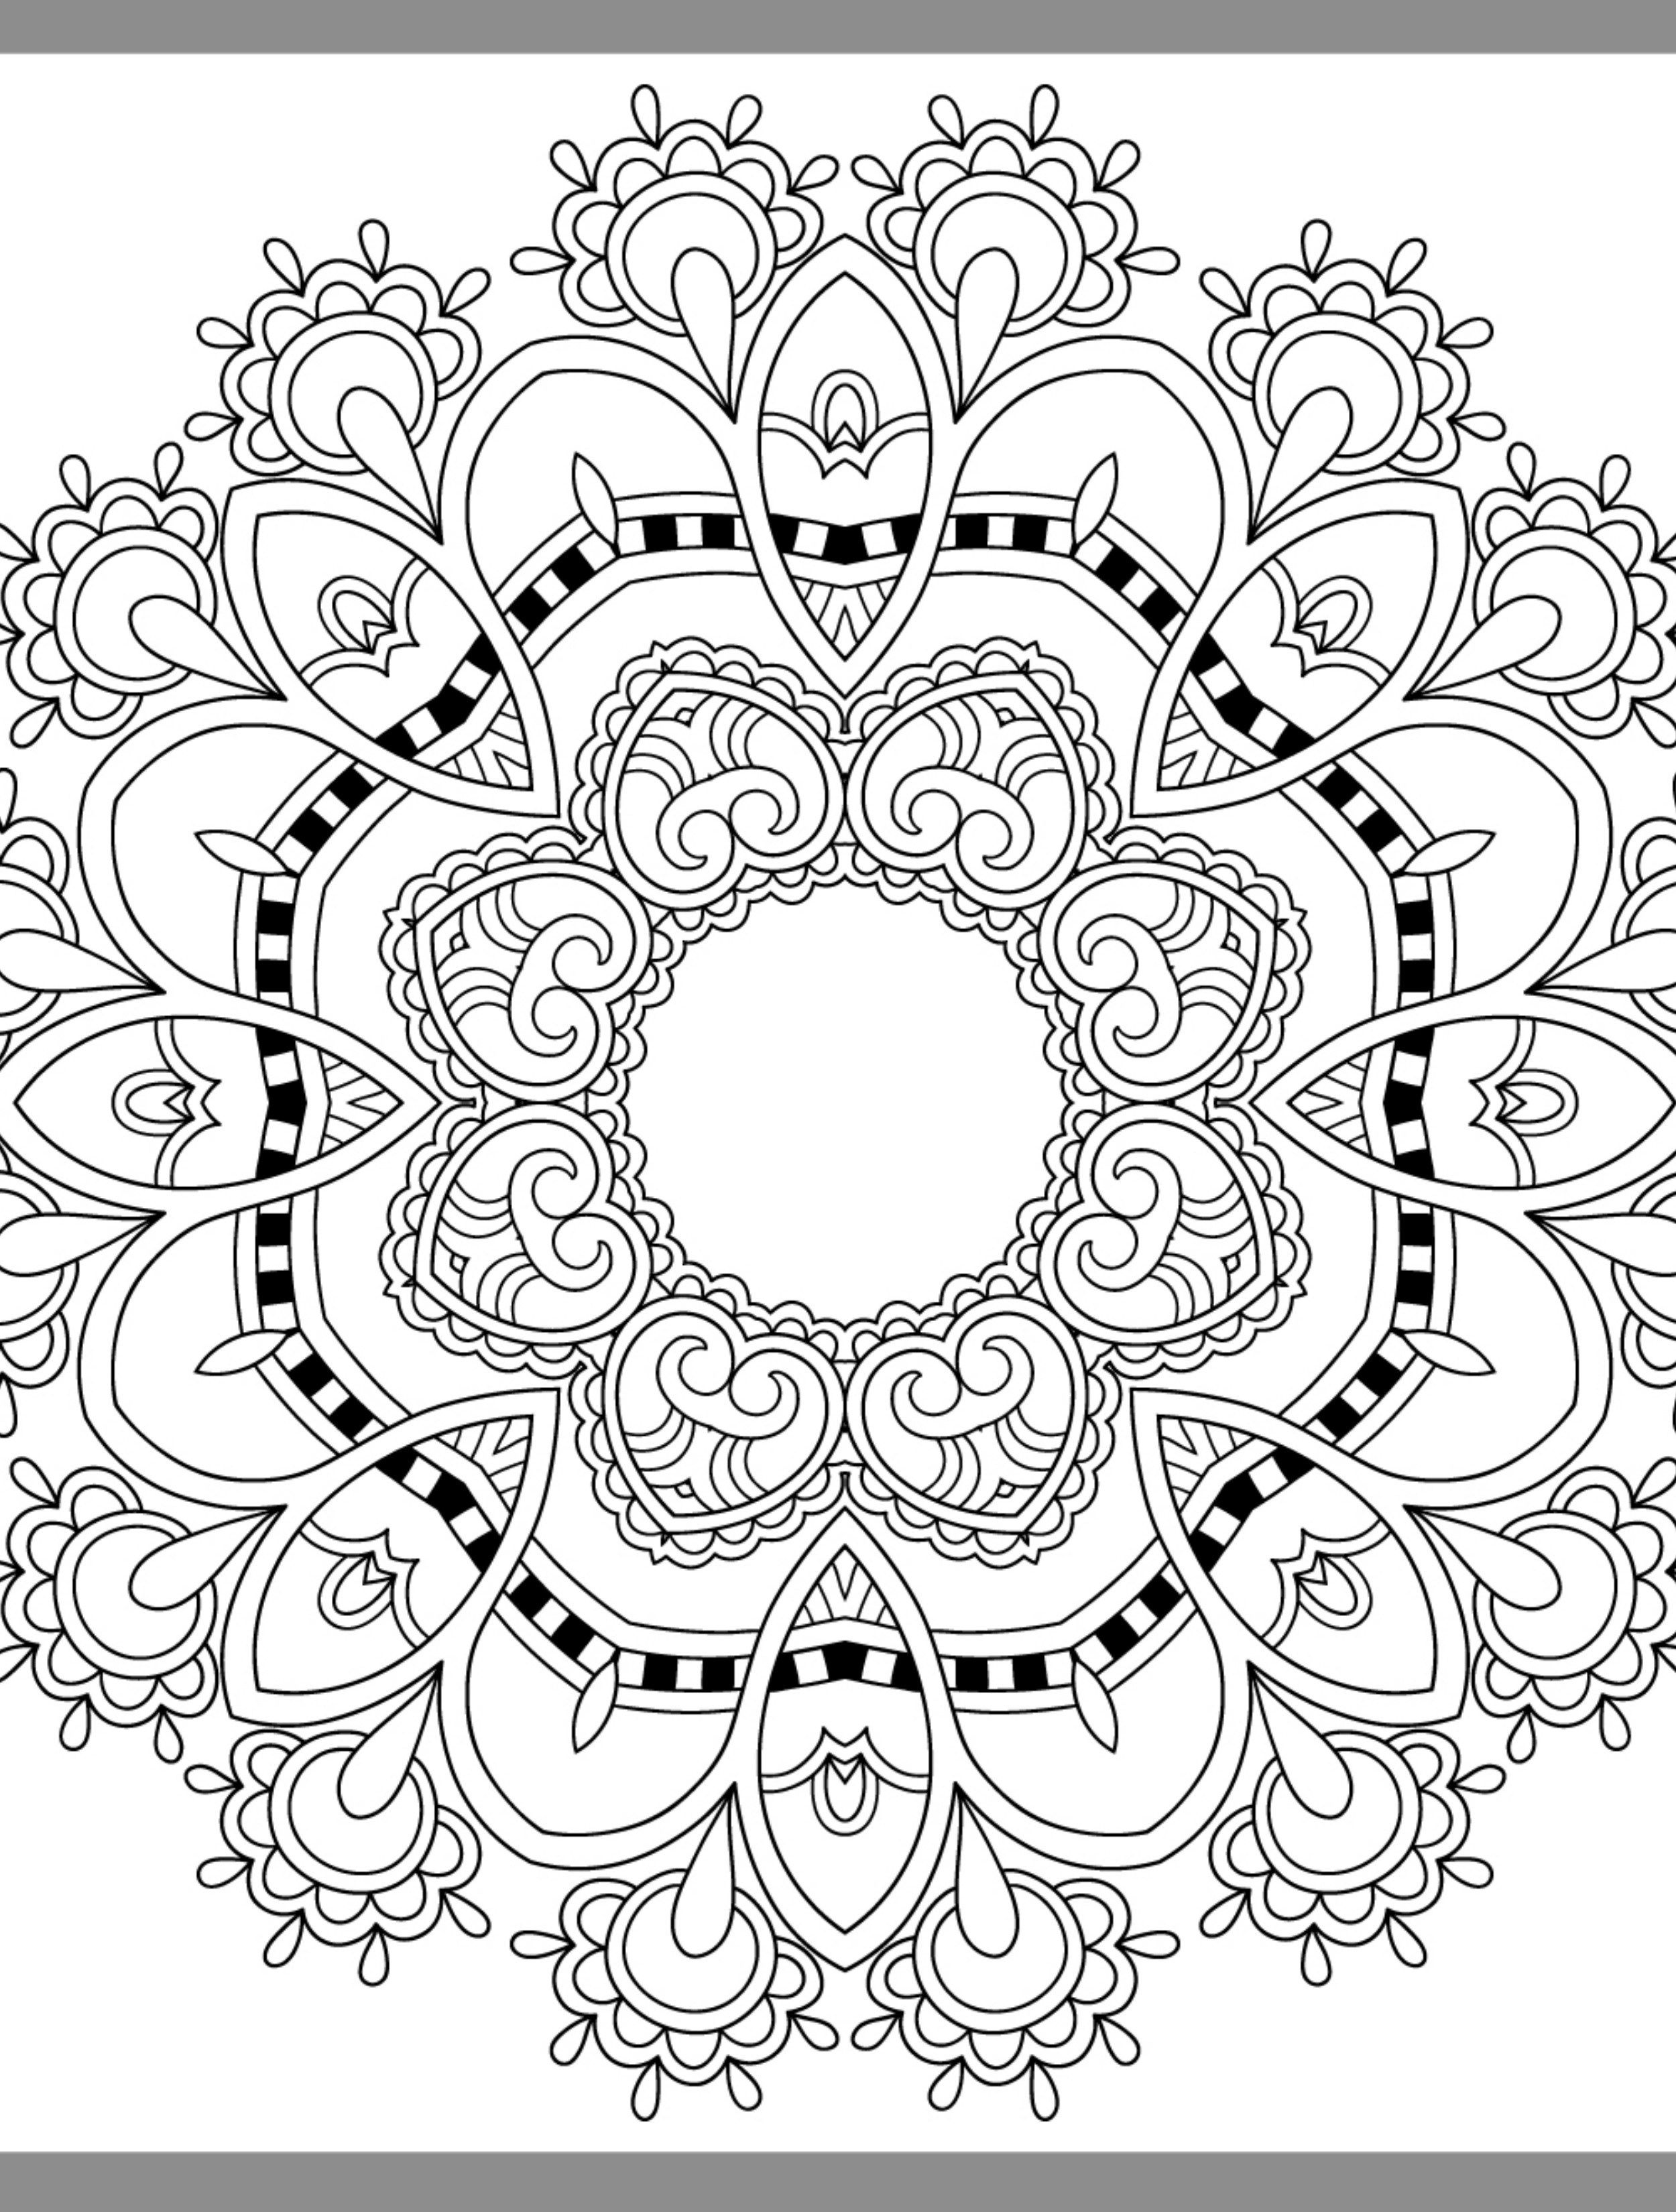 downloadable adult coloring pages for adults web | Colorama Pages ...